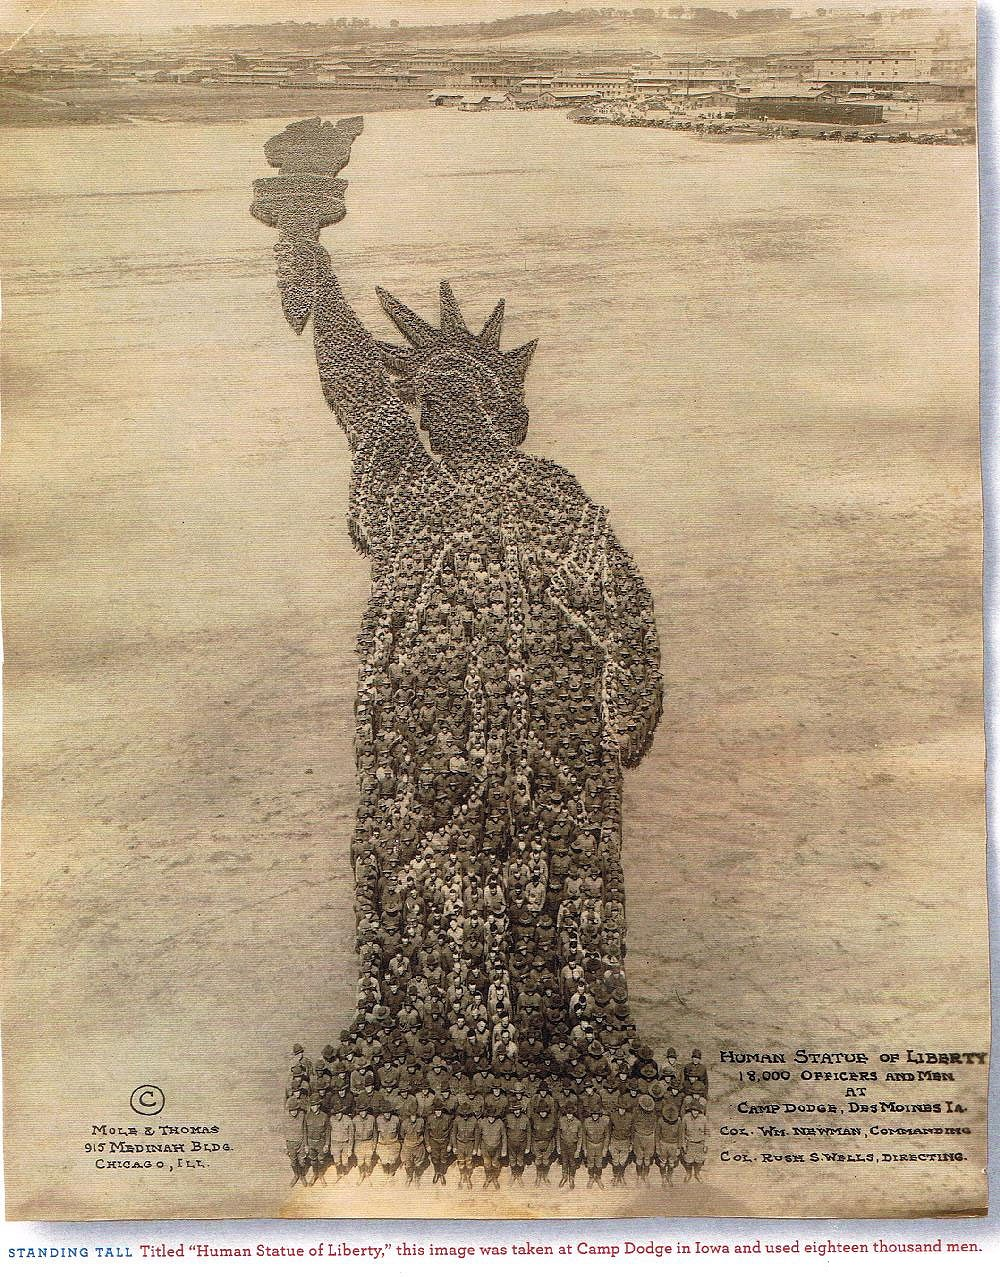 The Human Statue of Liberty formed by 18,000 men!